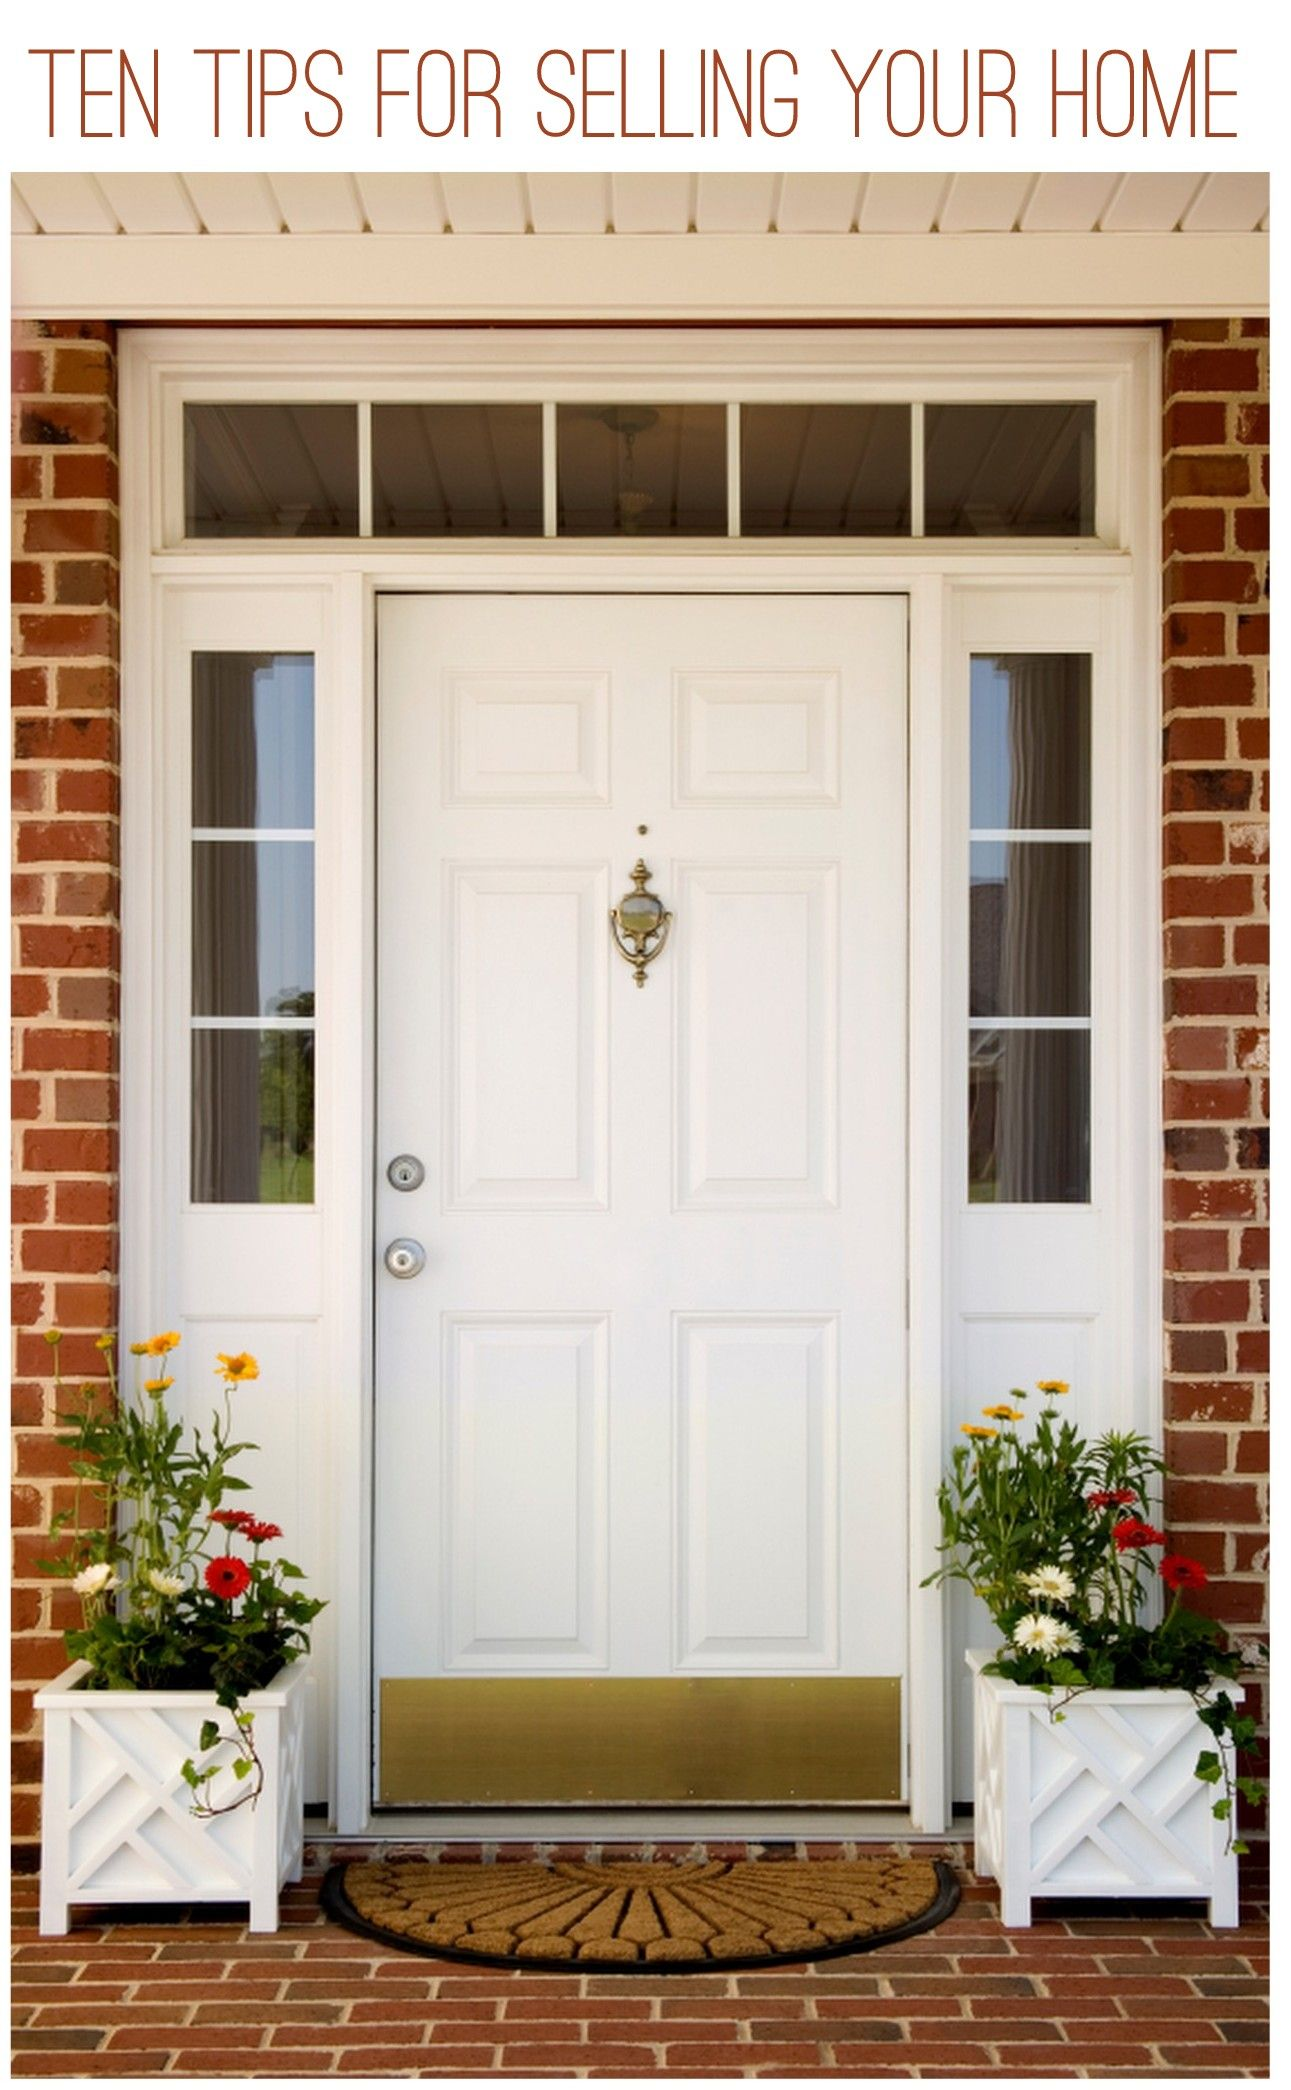 First Impressions Matter 2. Inspect the Exterior and Make Obvious Repairs 3. Get a Pest Inspection 4. Empty the Garage 5. Clear Out the Clutter 6. & Ten Tips for Selling Your Home | Clutter Empty and Real estate